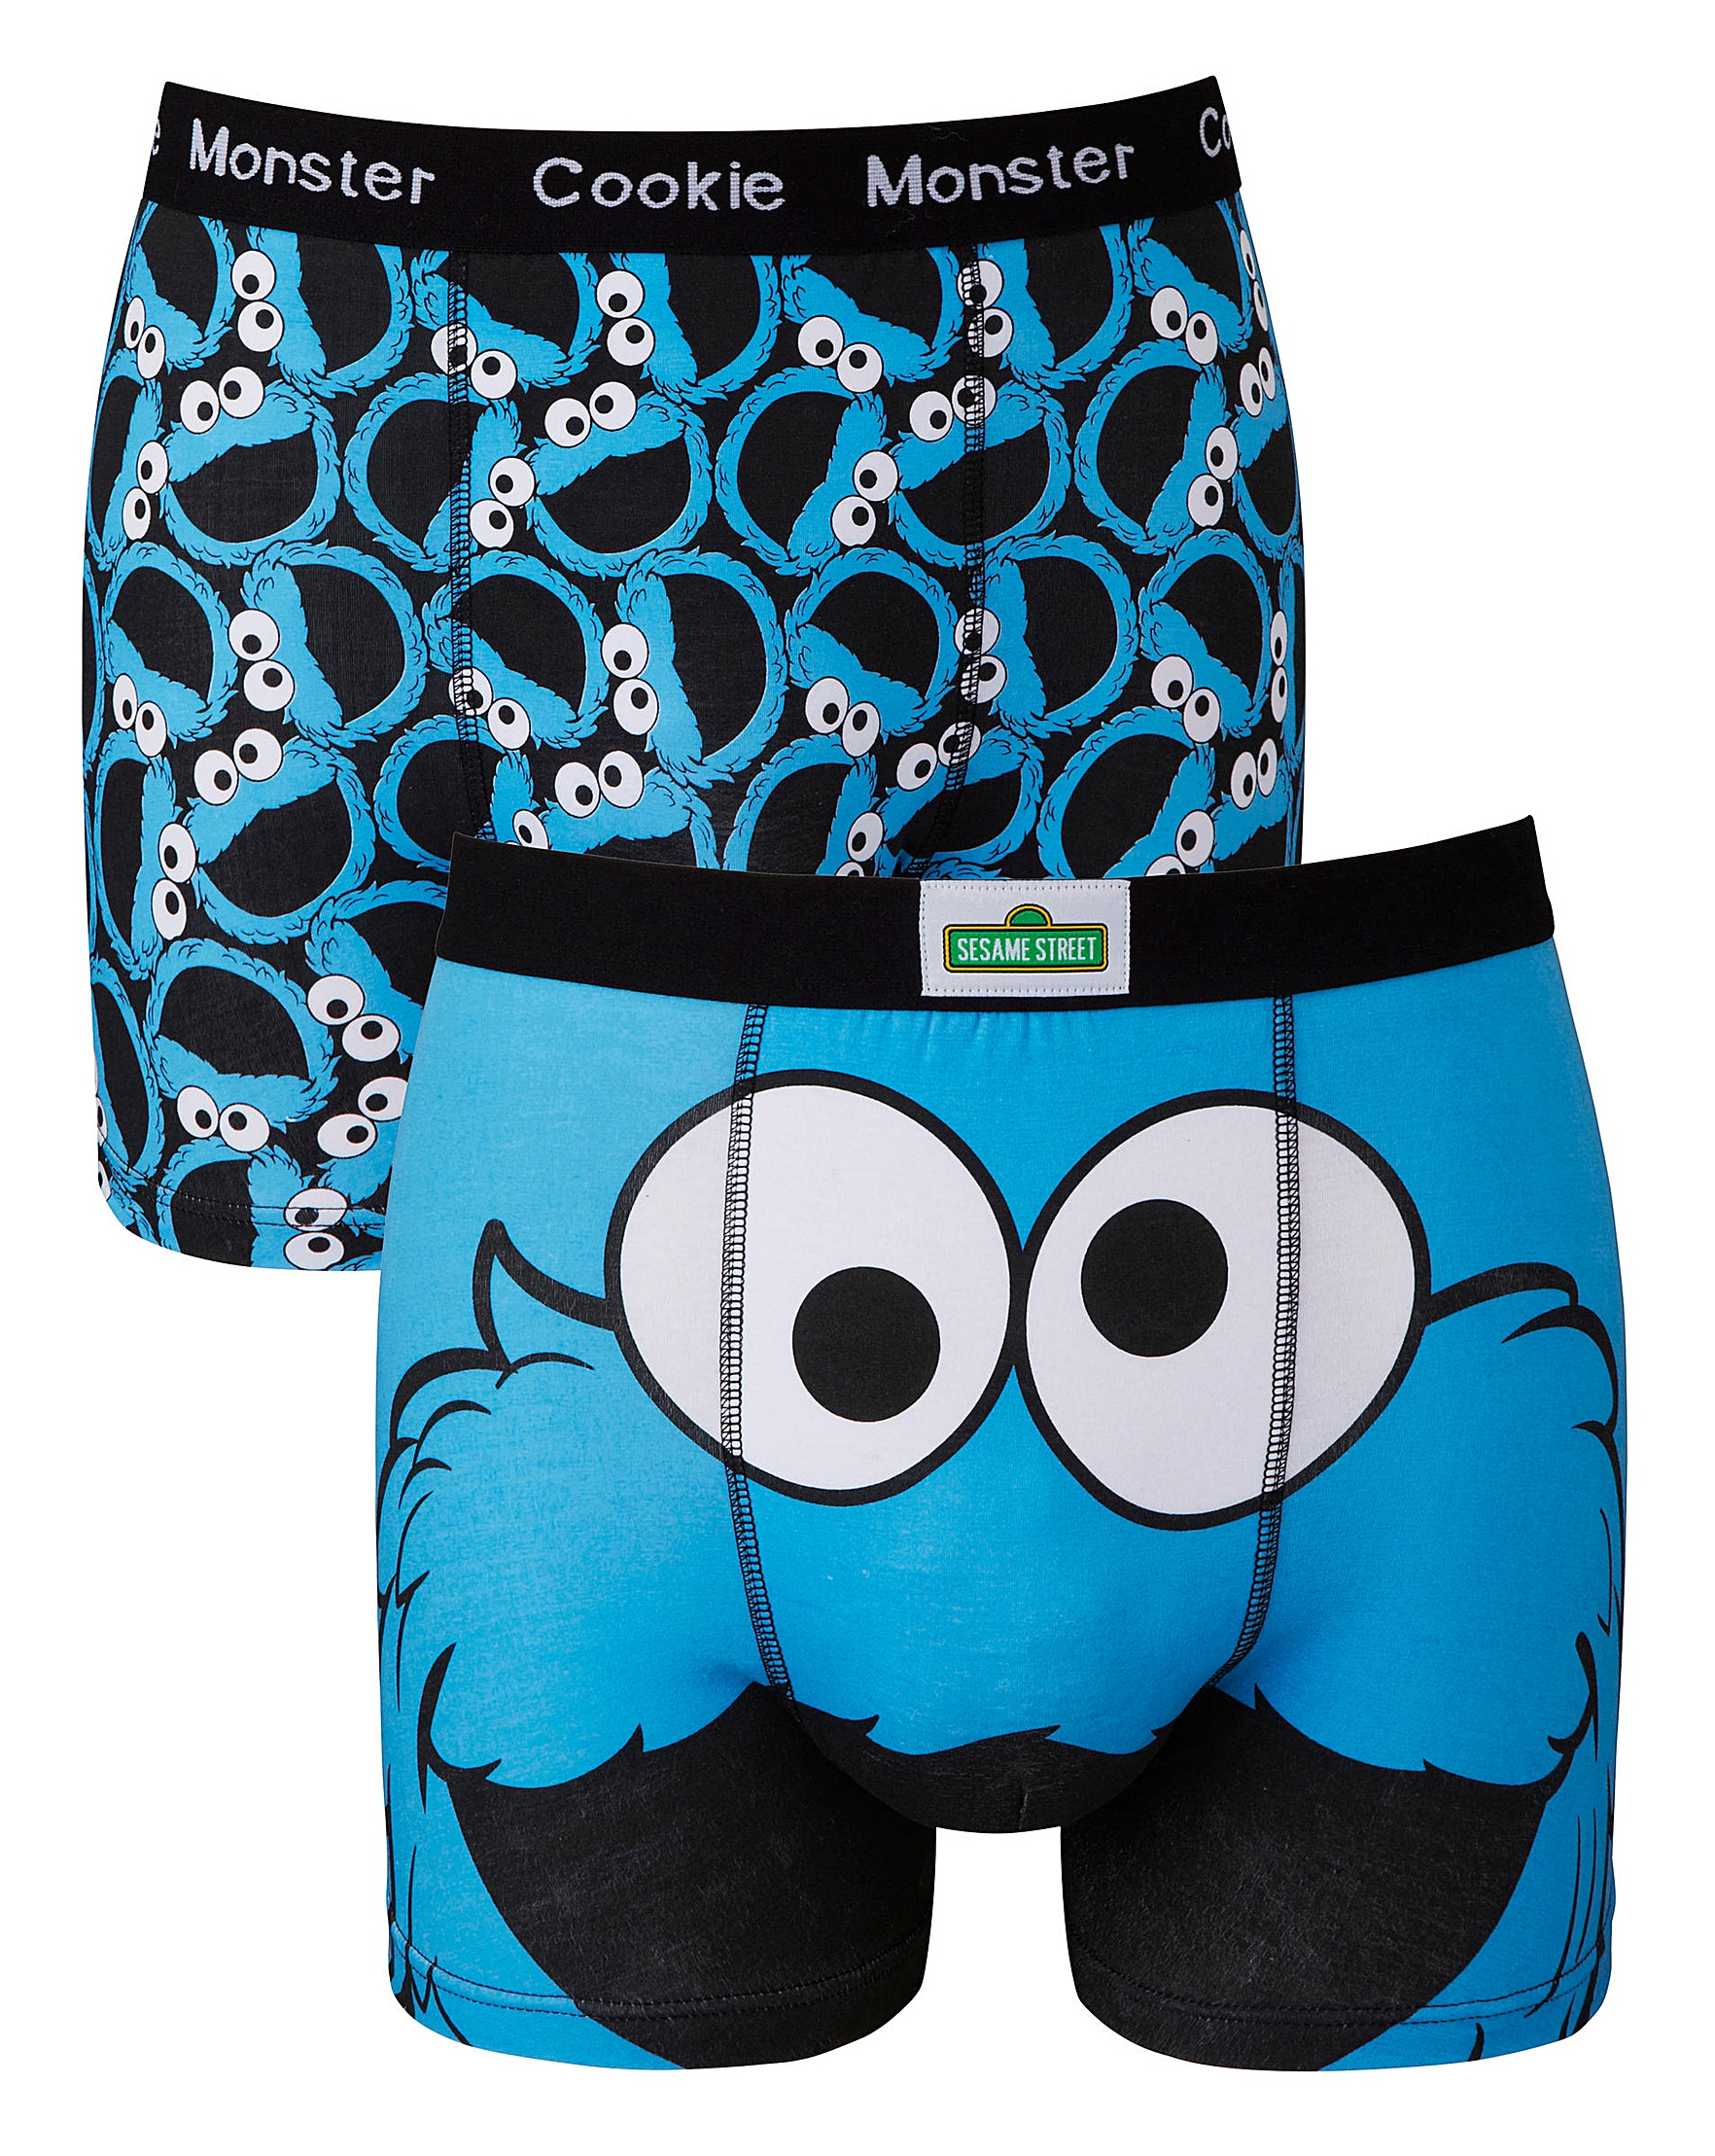 Cookie Monster Blue Pack 2 Boxers